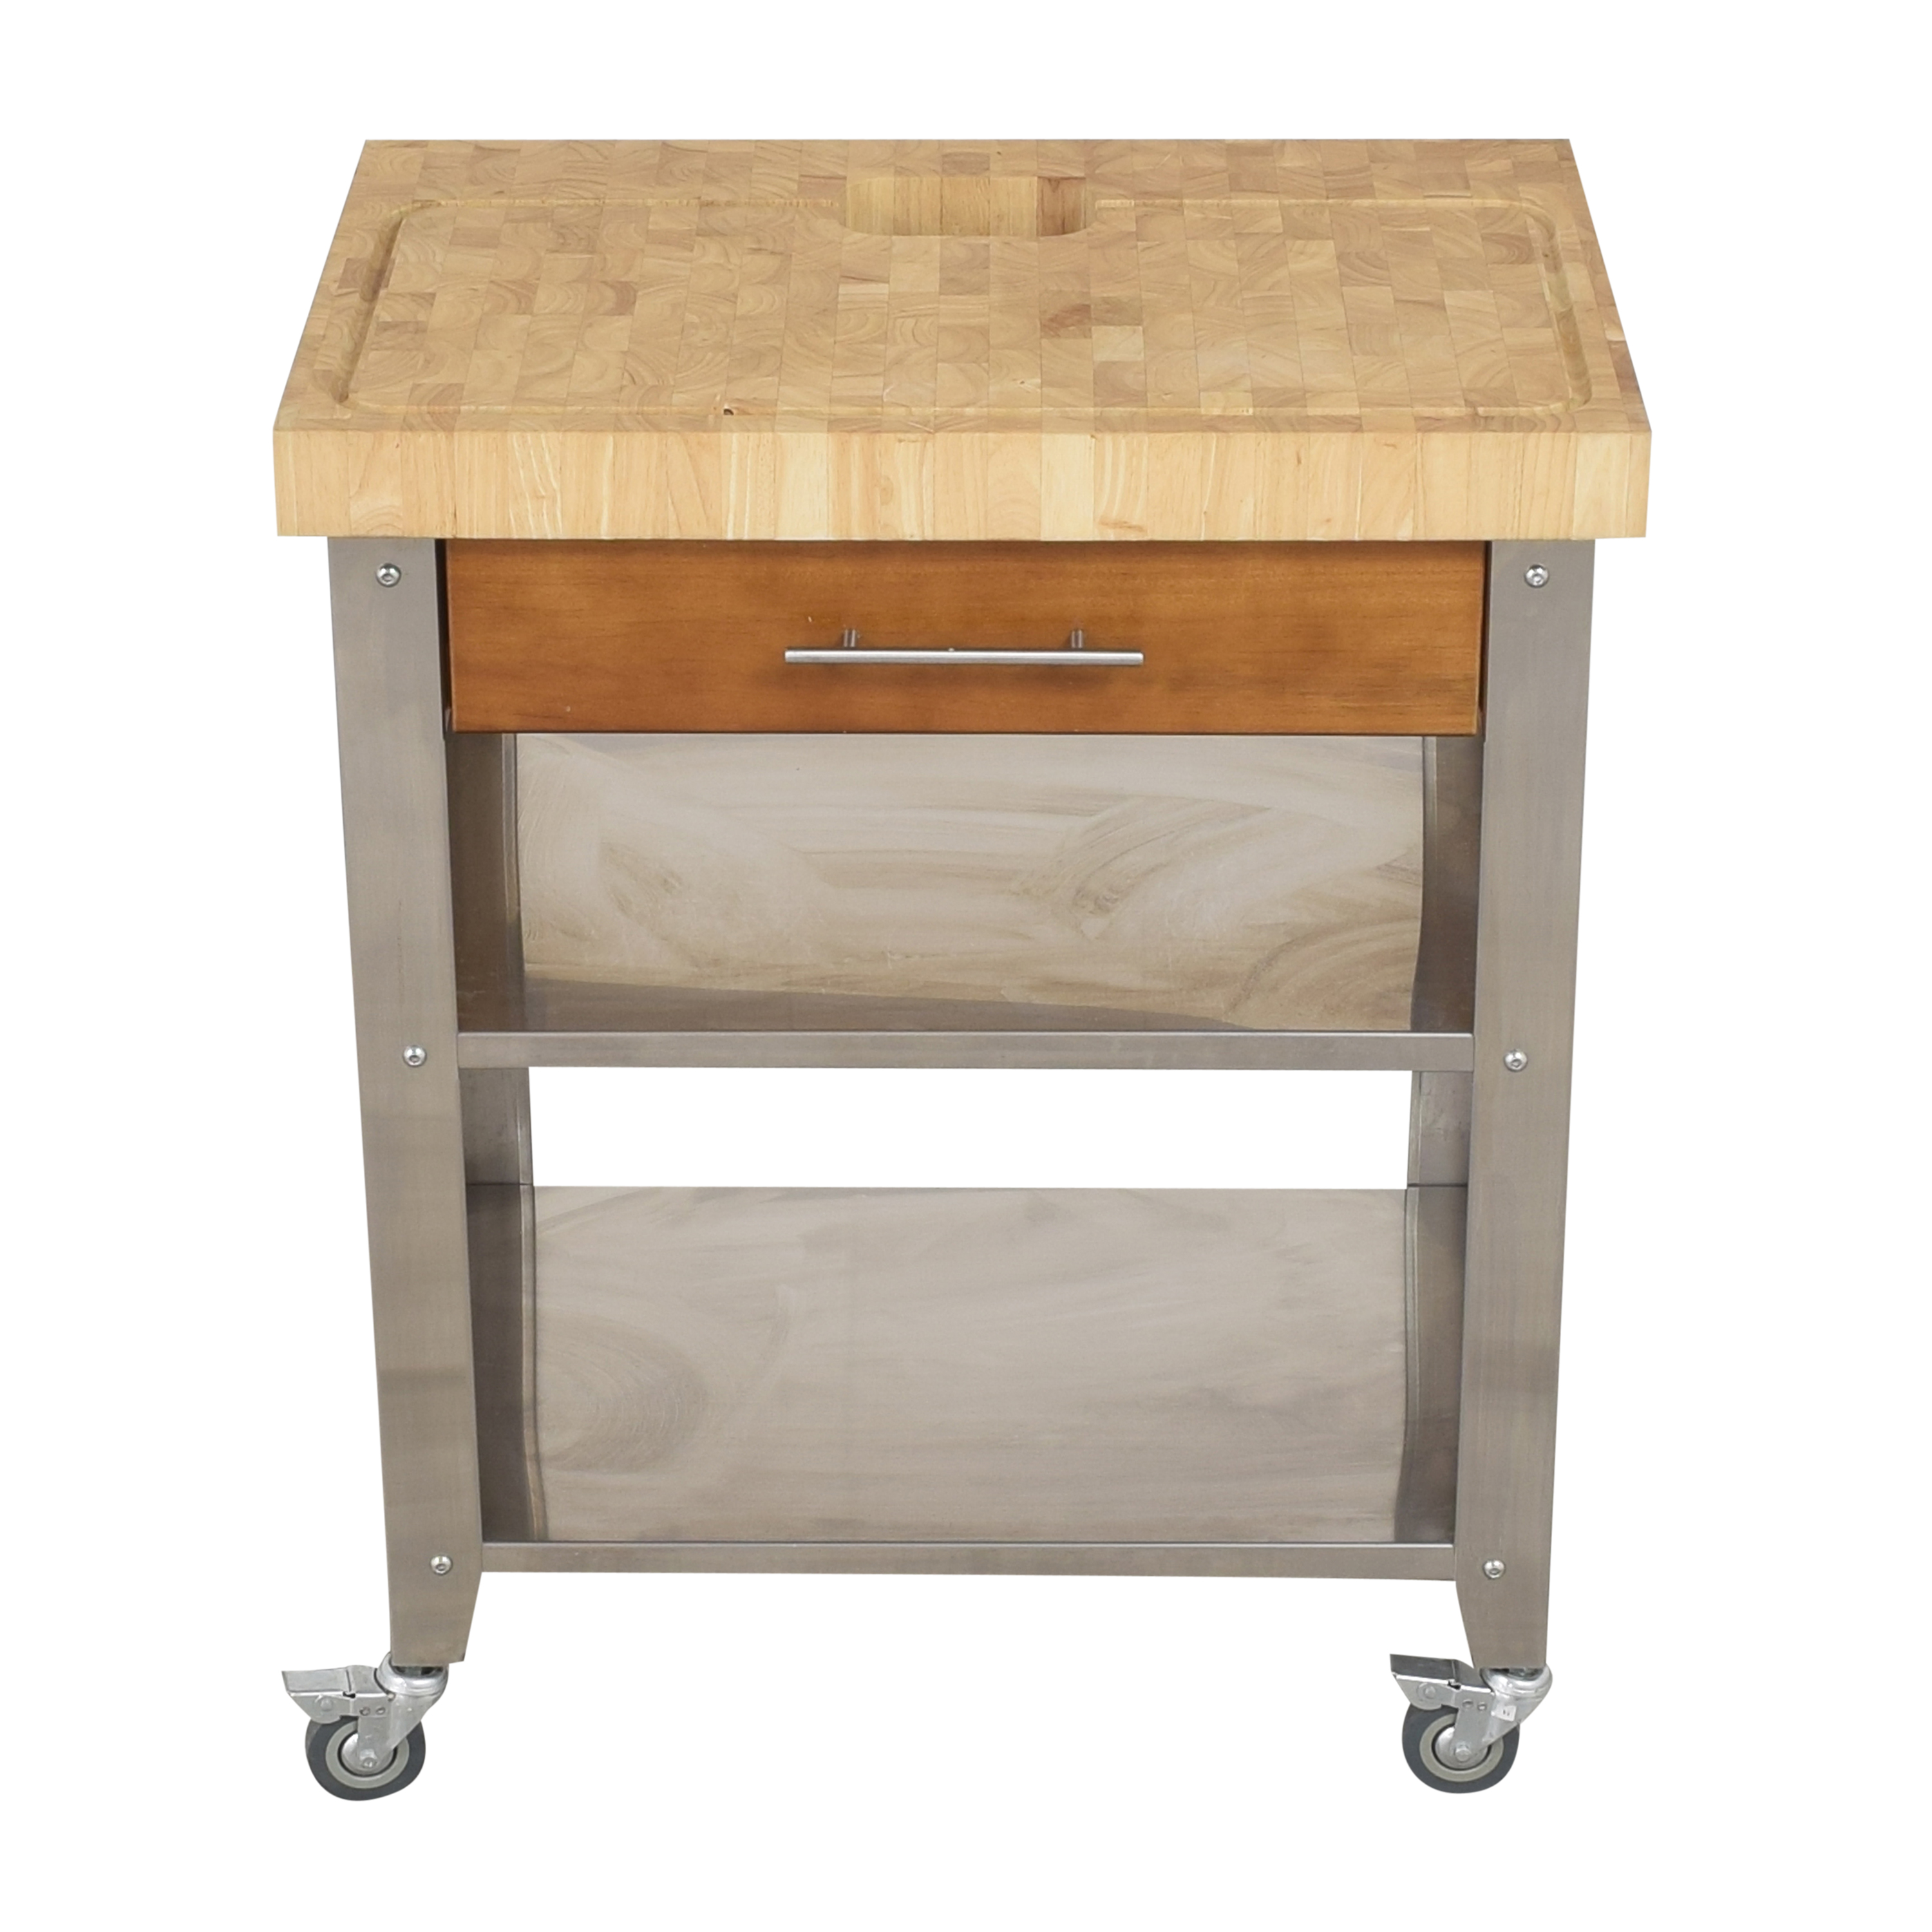 Chris & Chris Chris & Chris Pro Stadium Series Kitchen Cart second hand